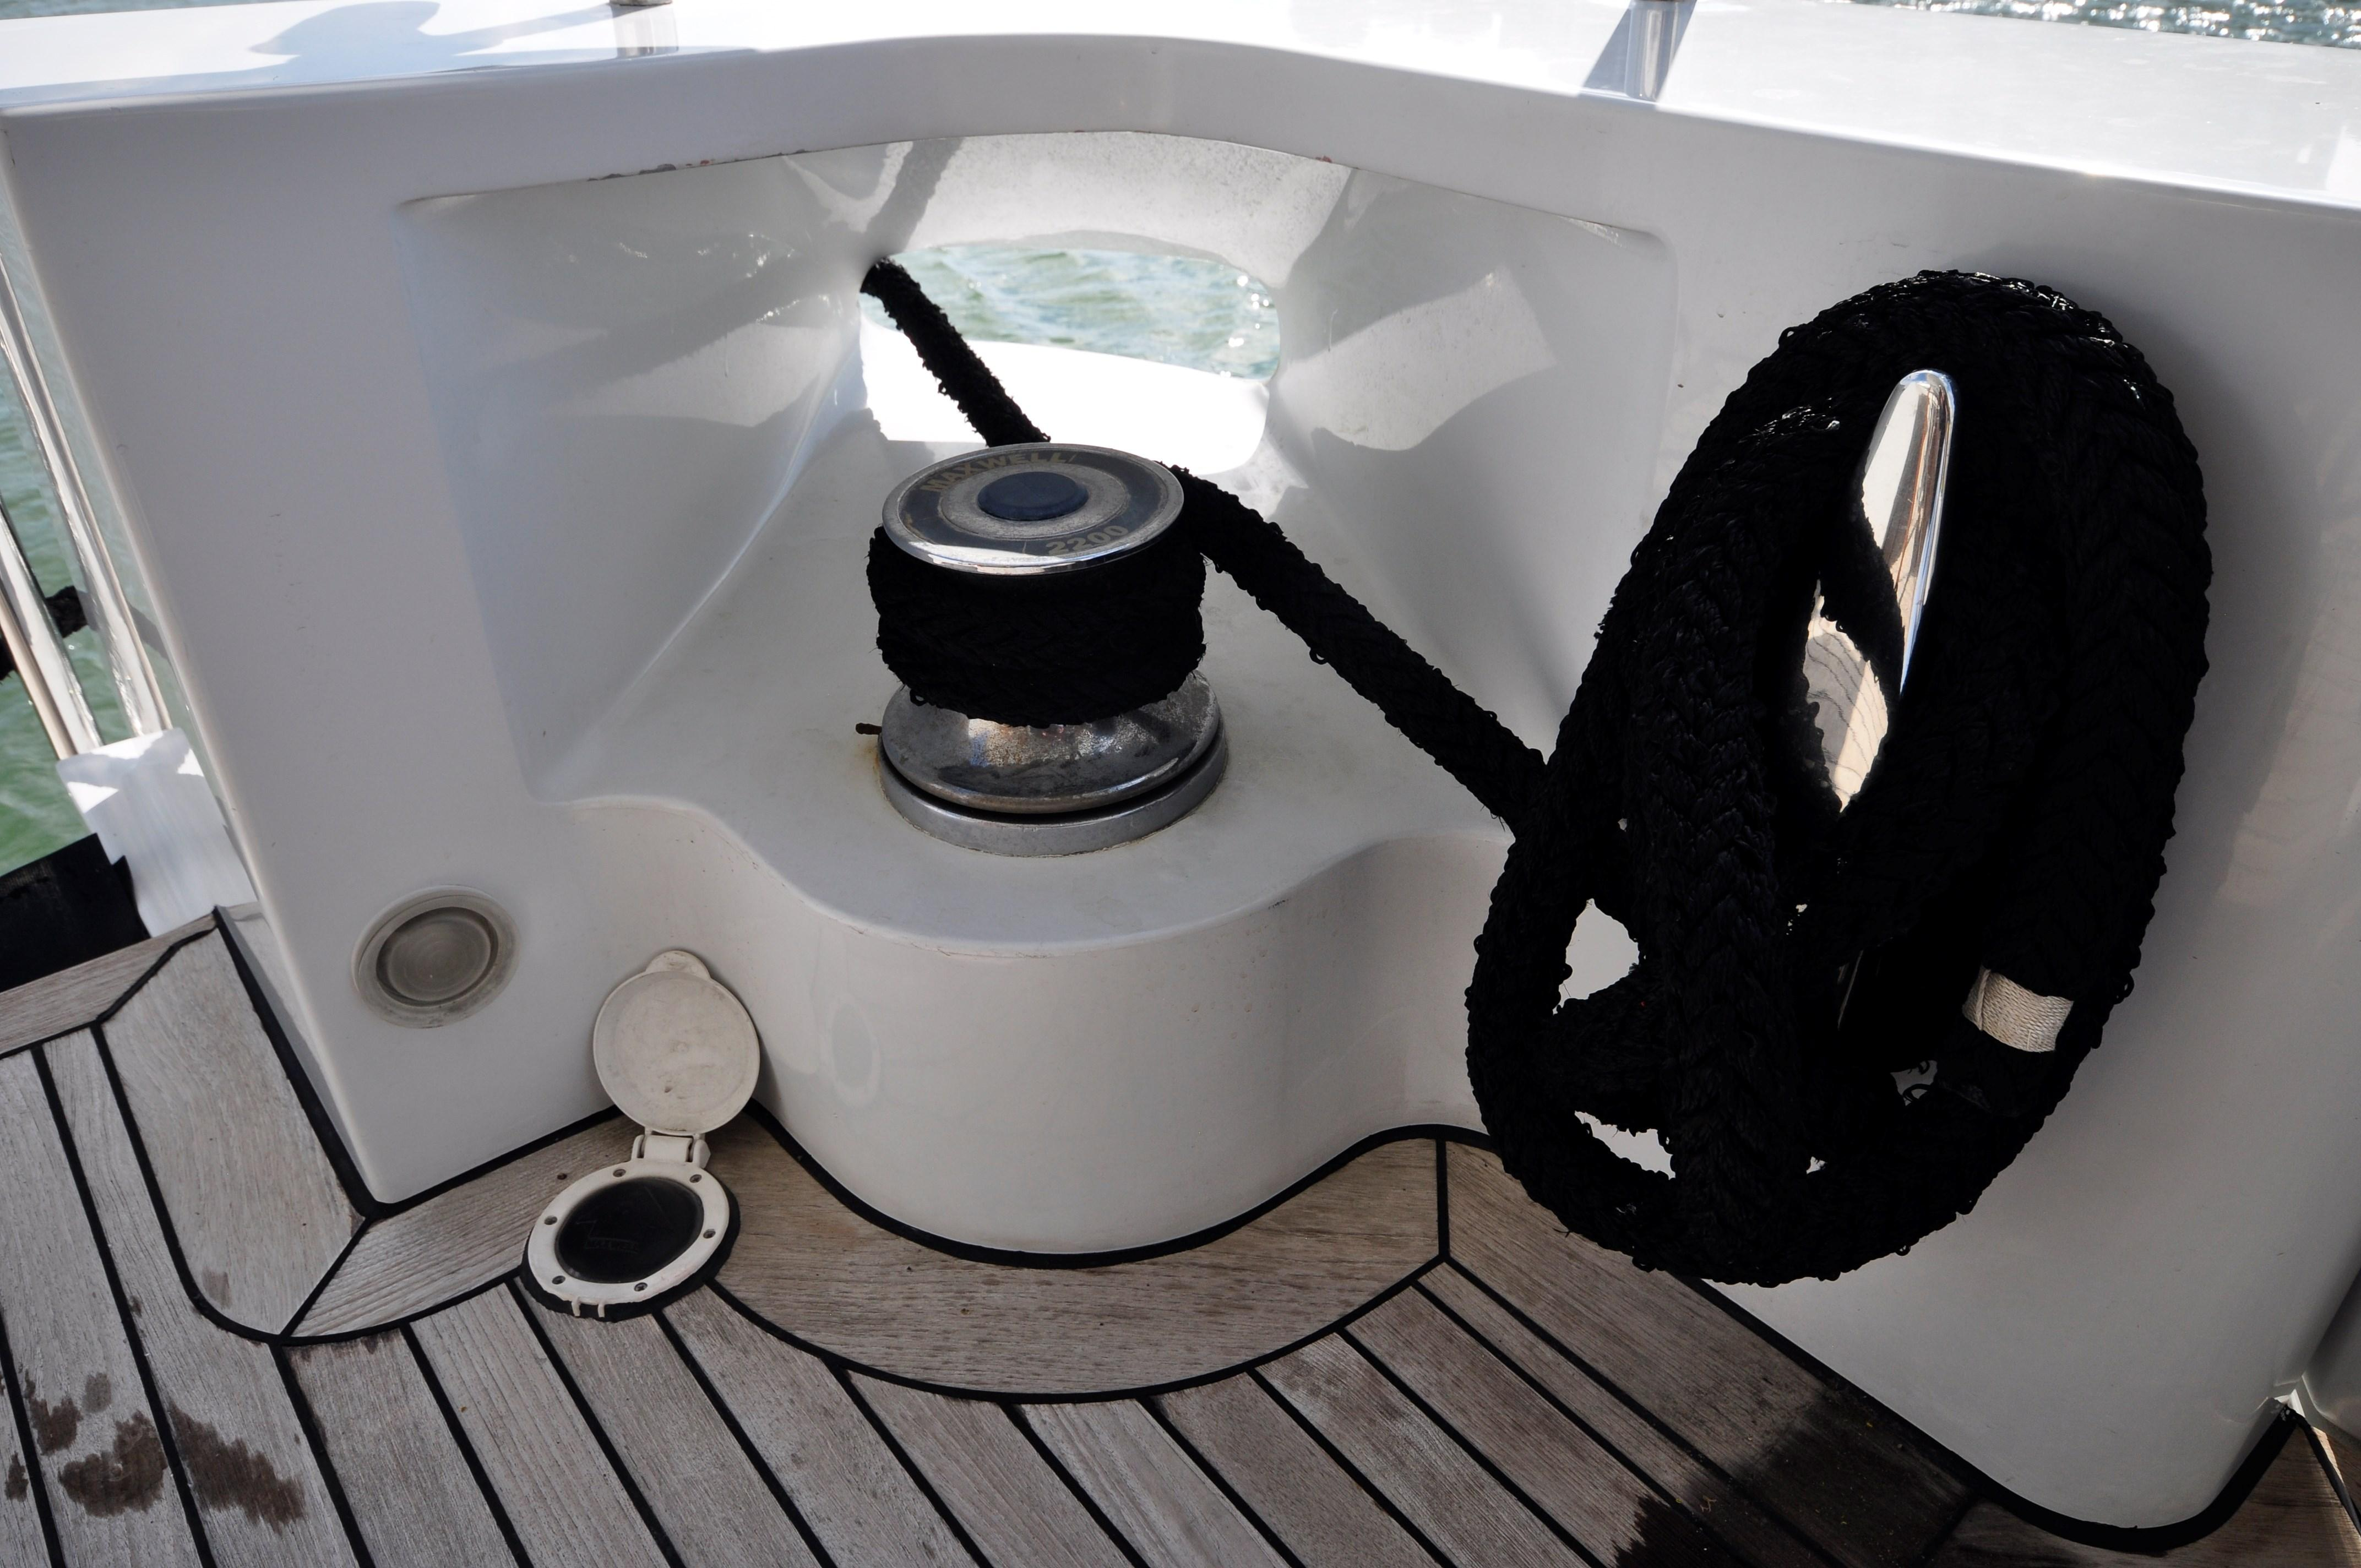 Coolant Recovery System Arize Technologies CRS300 Marine RV Engine Coolant Tank